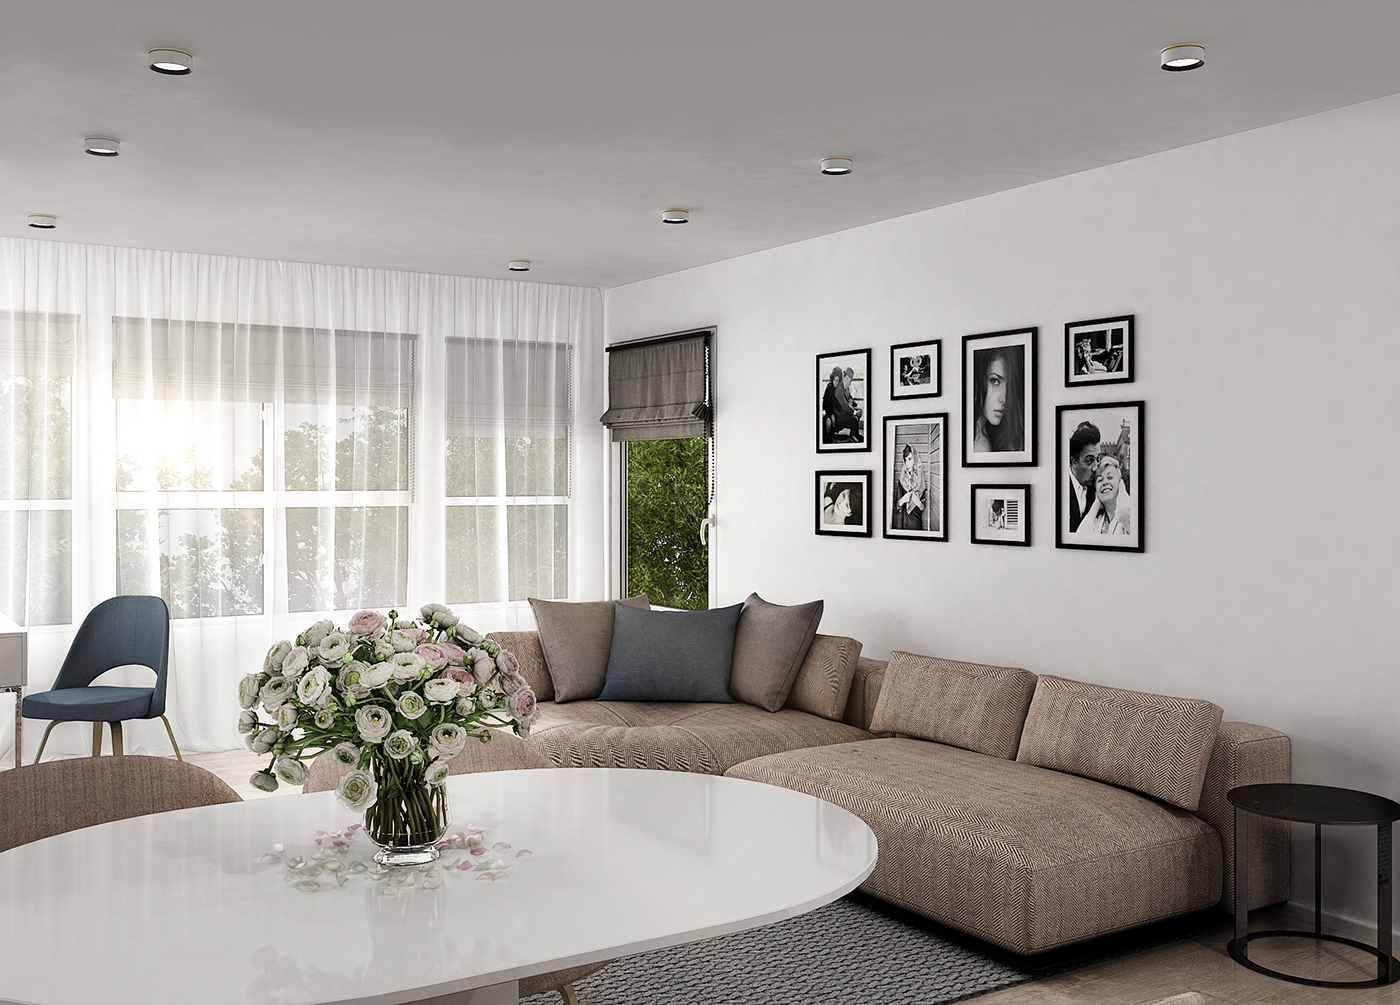 LIVING ROOM + KITCHEN for Vancouver Private Apartment on Behance